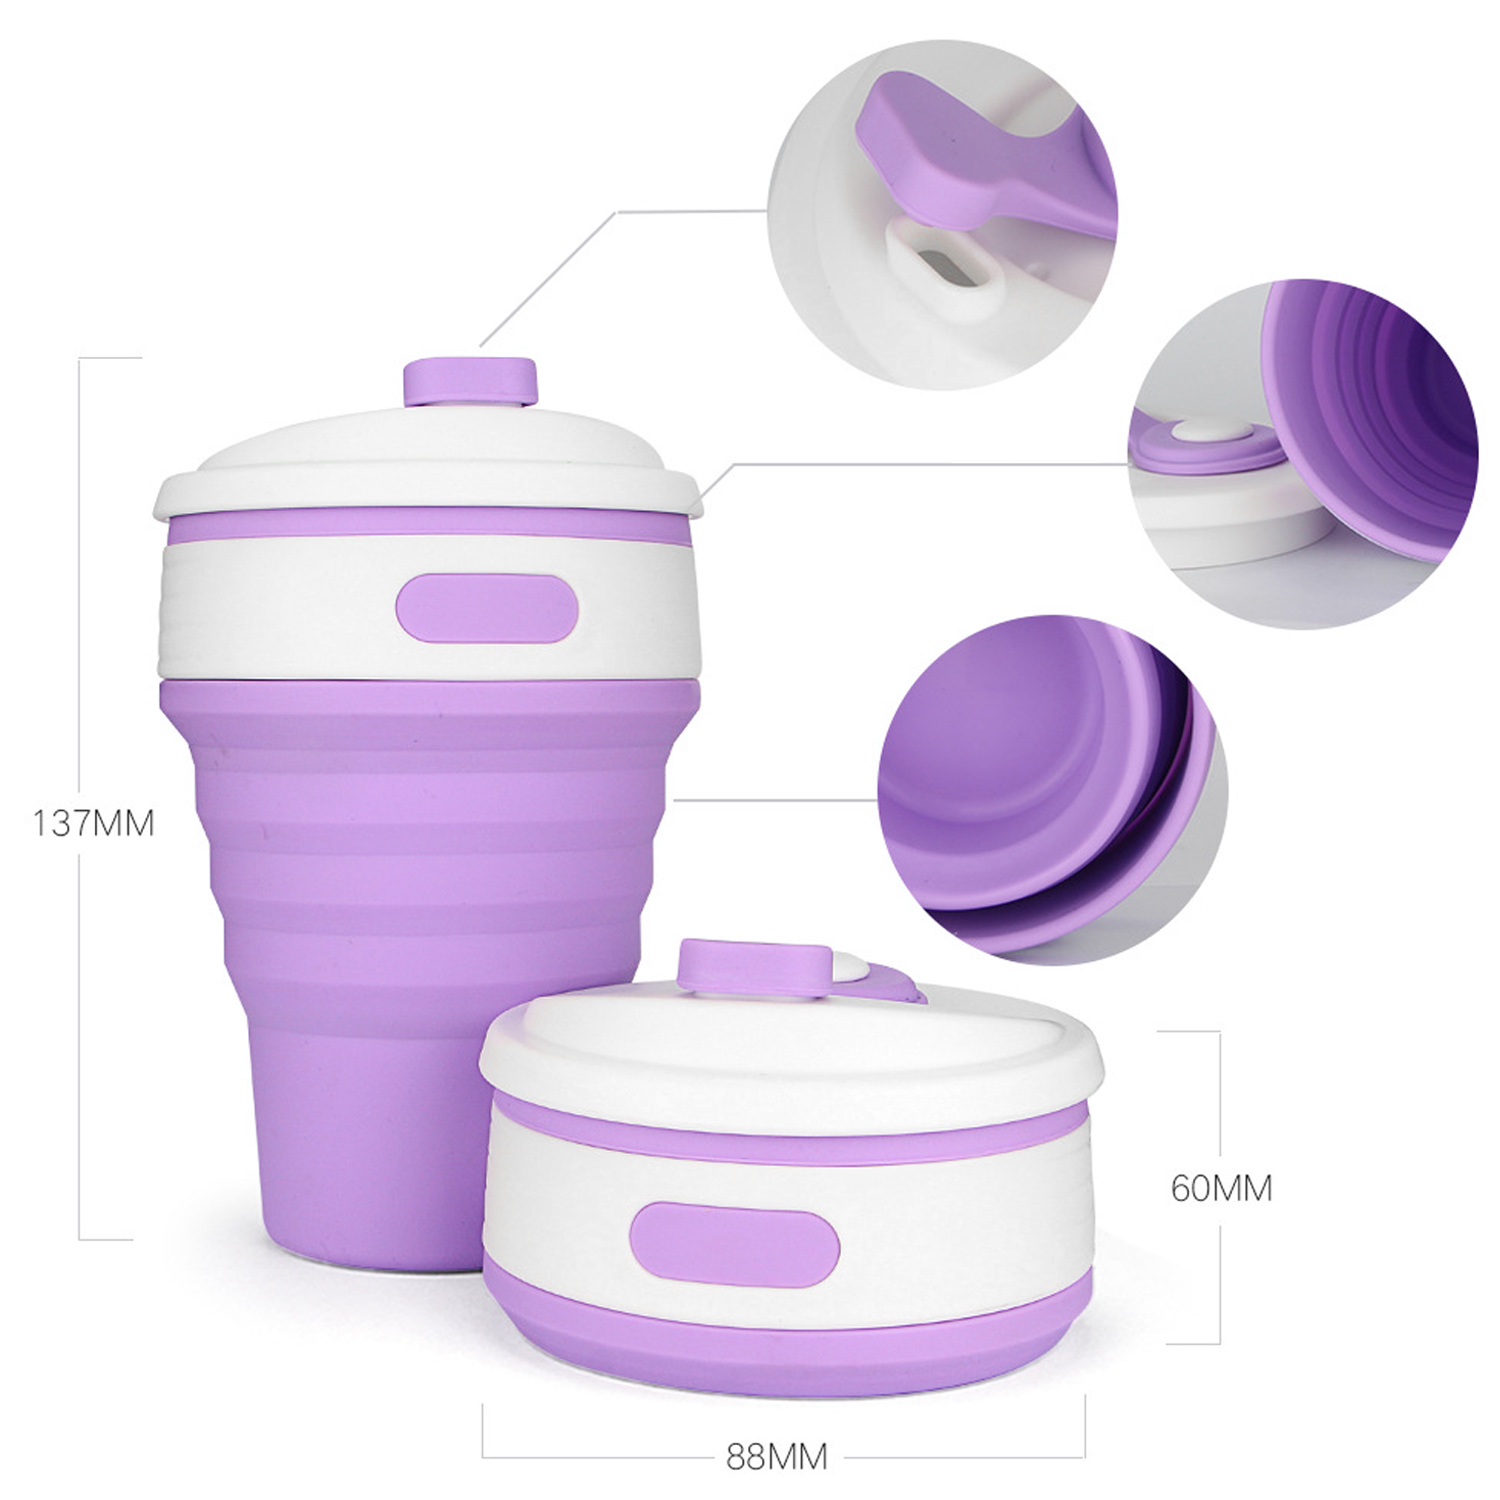 Behogar 350ml Drinking Cups Travel Silicone Retractable Folding Water Cups Coffee Tea Cup Drinking Bottle for Camping Hiking